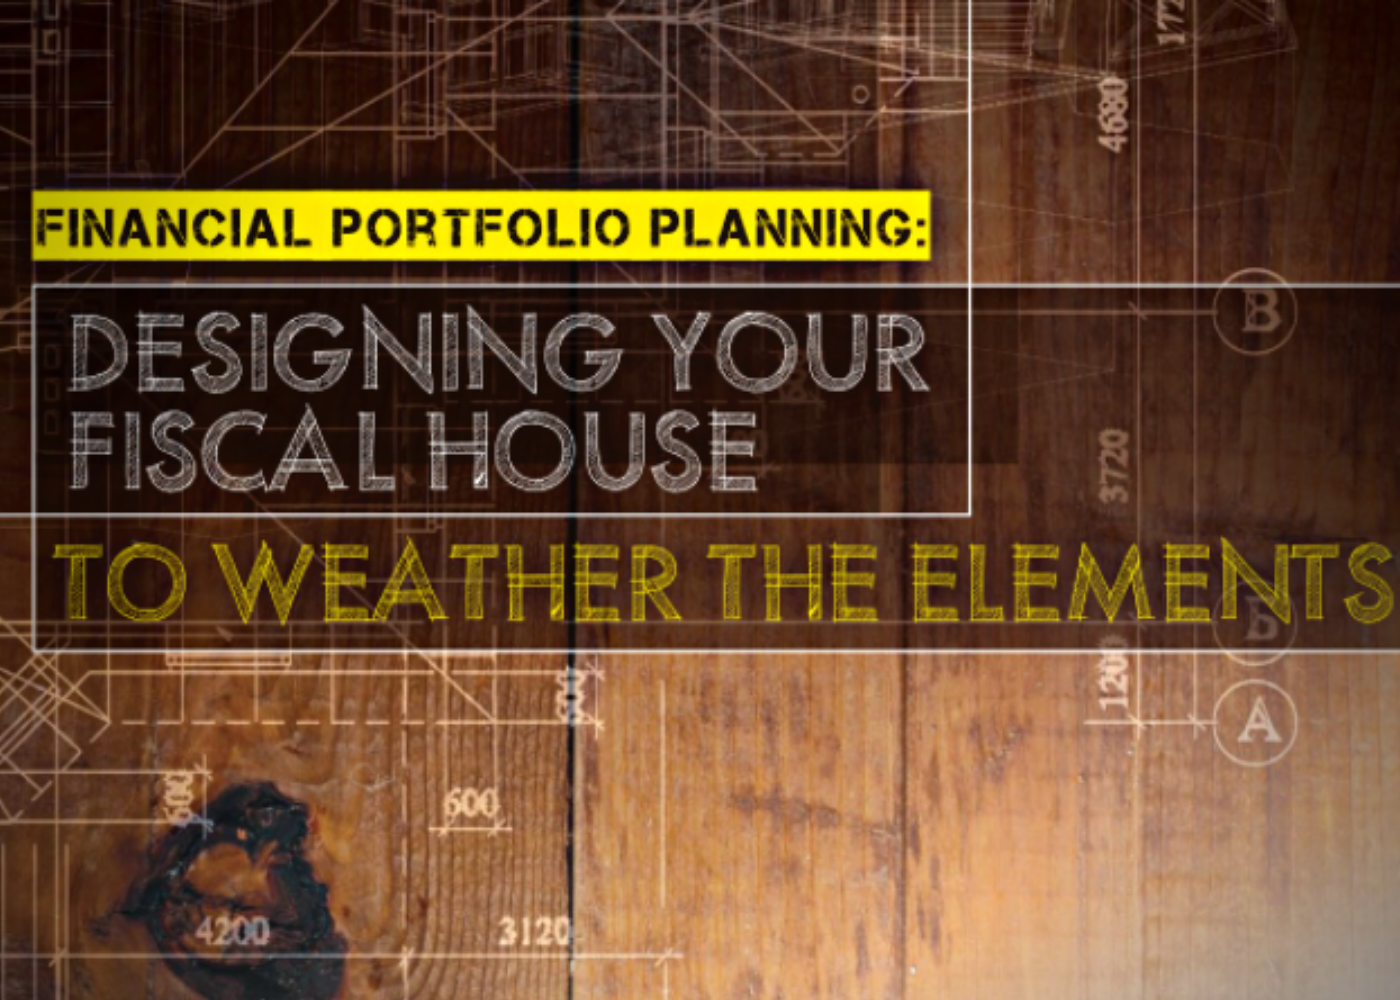 Designing Your Fiscal House Thumbnail